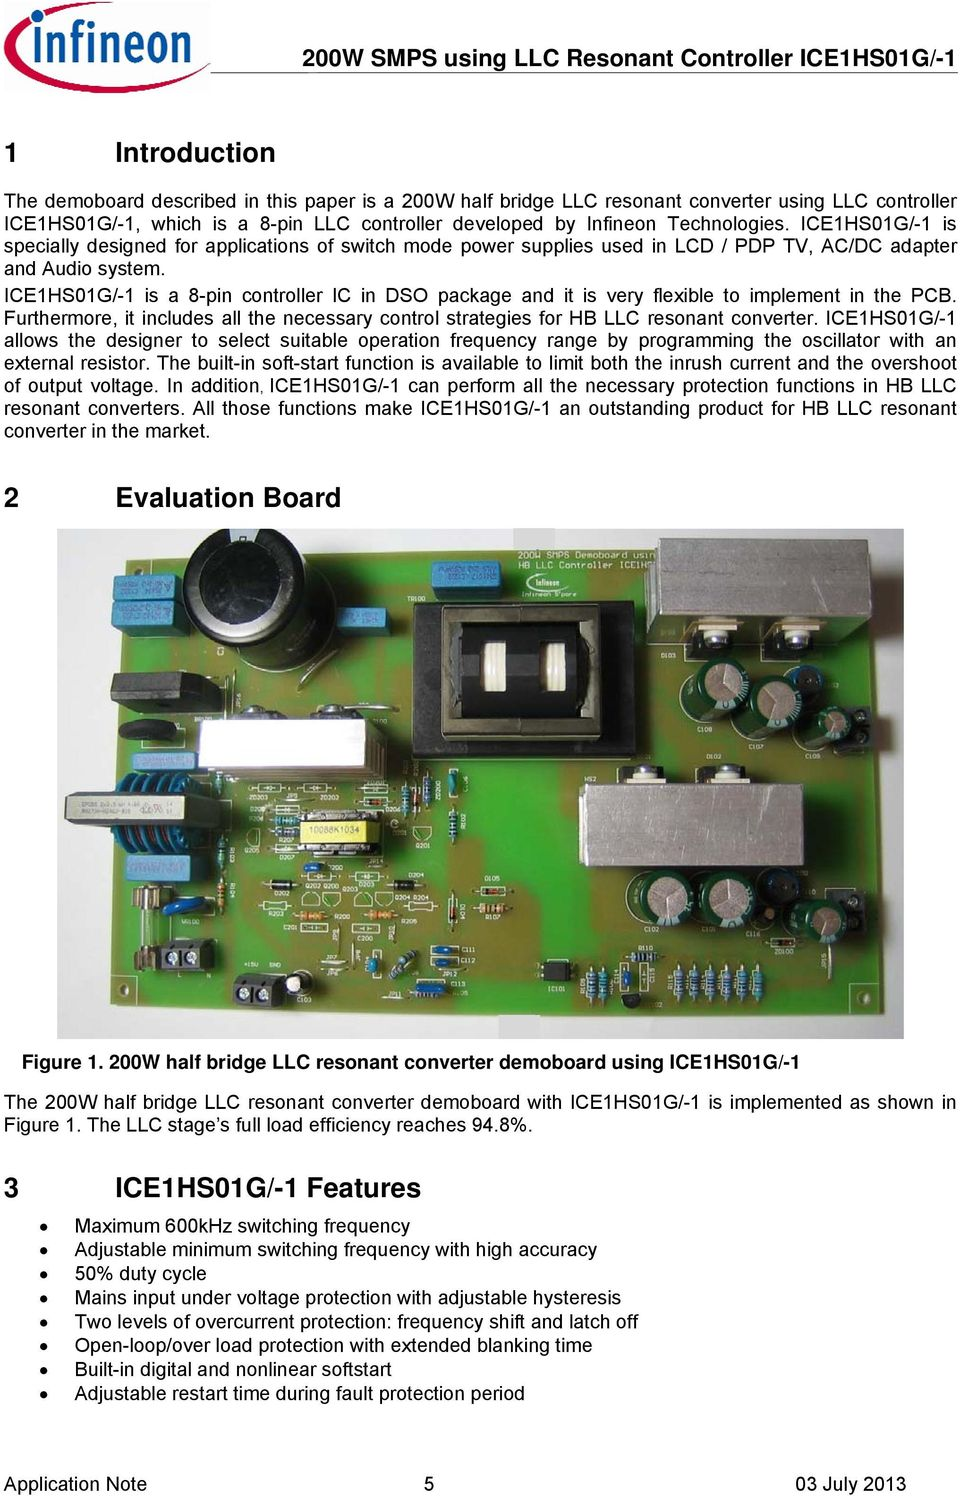 Application Note Evalhs Ice1hs01g 200w Smps Evaluation Board Using Voltage Ac Dc 15v Circuit View Icehs0g Is A 8 Pin Controller Ic In Dso Package And It 6 Technical Specification 00w